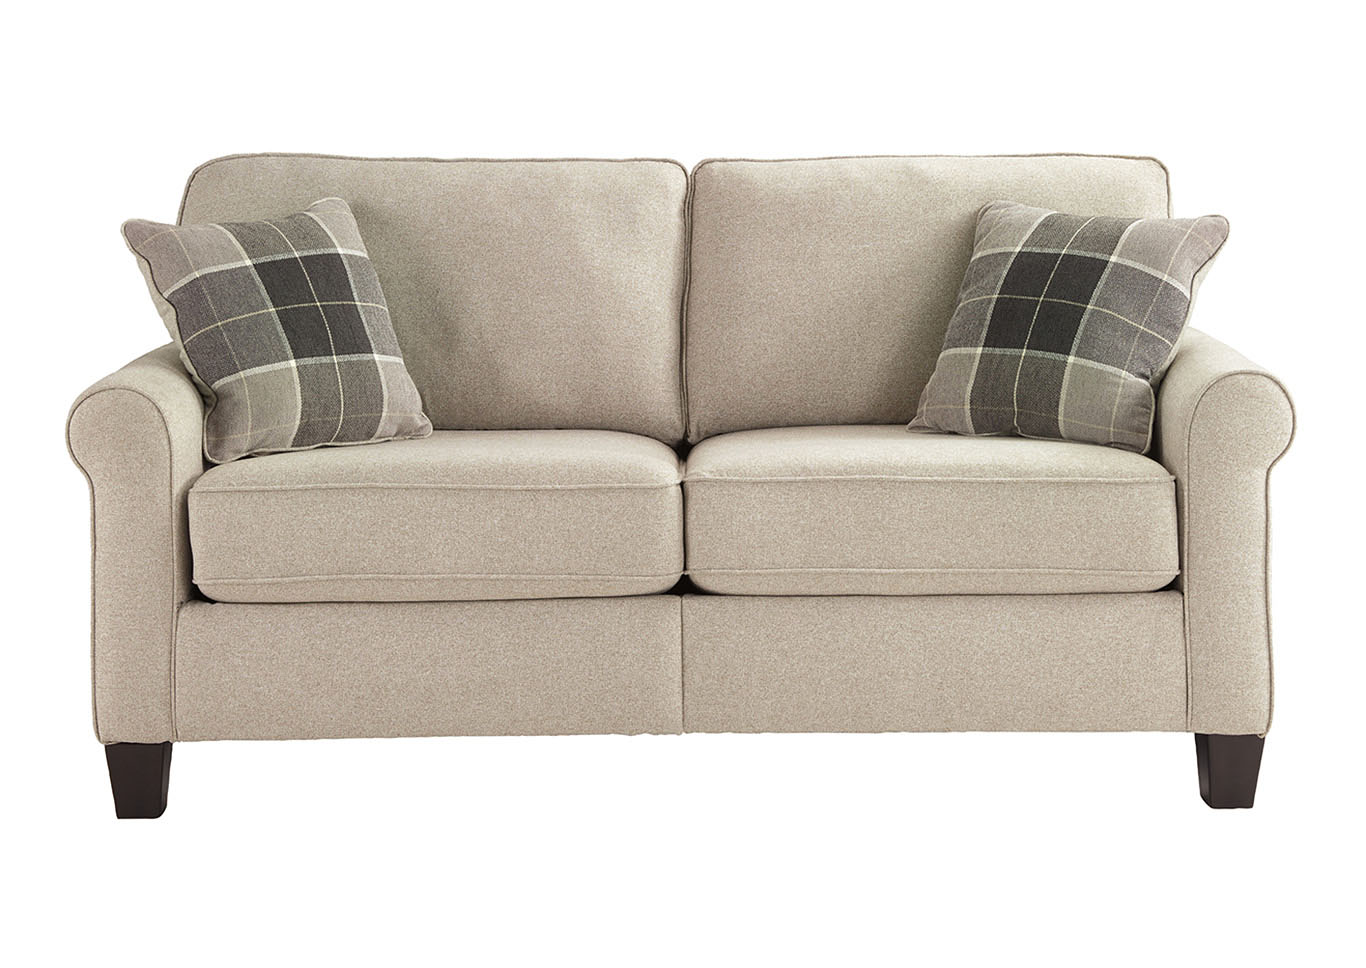 Lingen Fossil Loveseat,Signature Design By Ashley